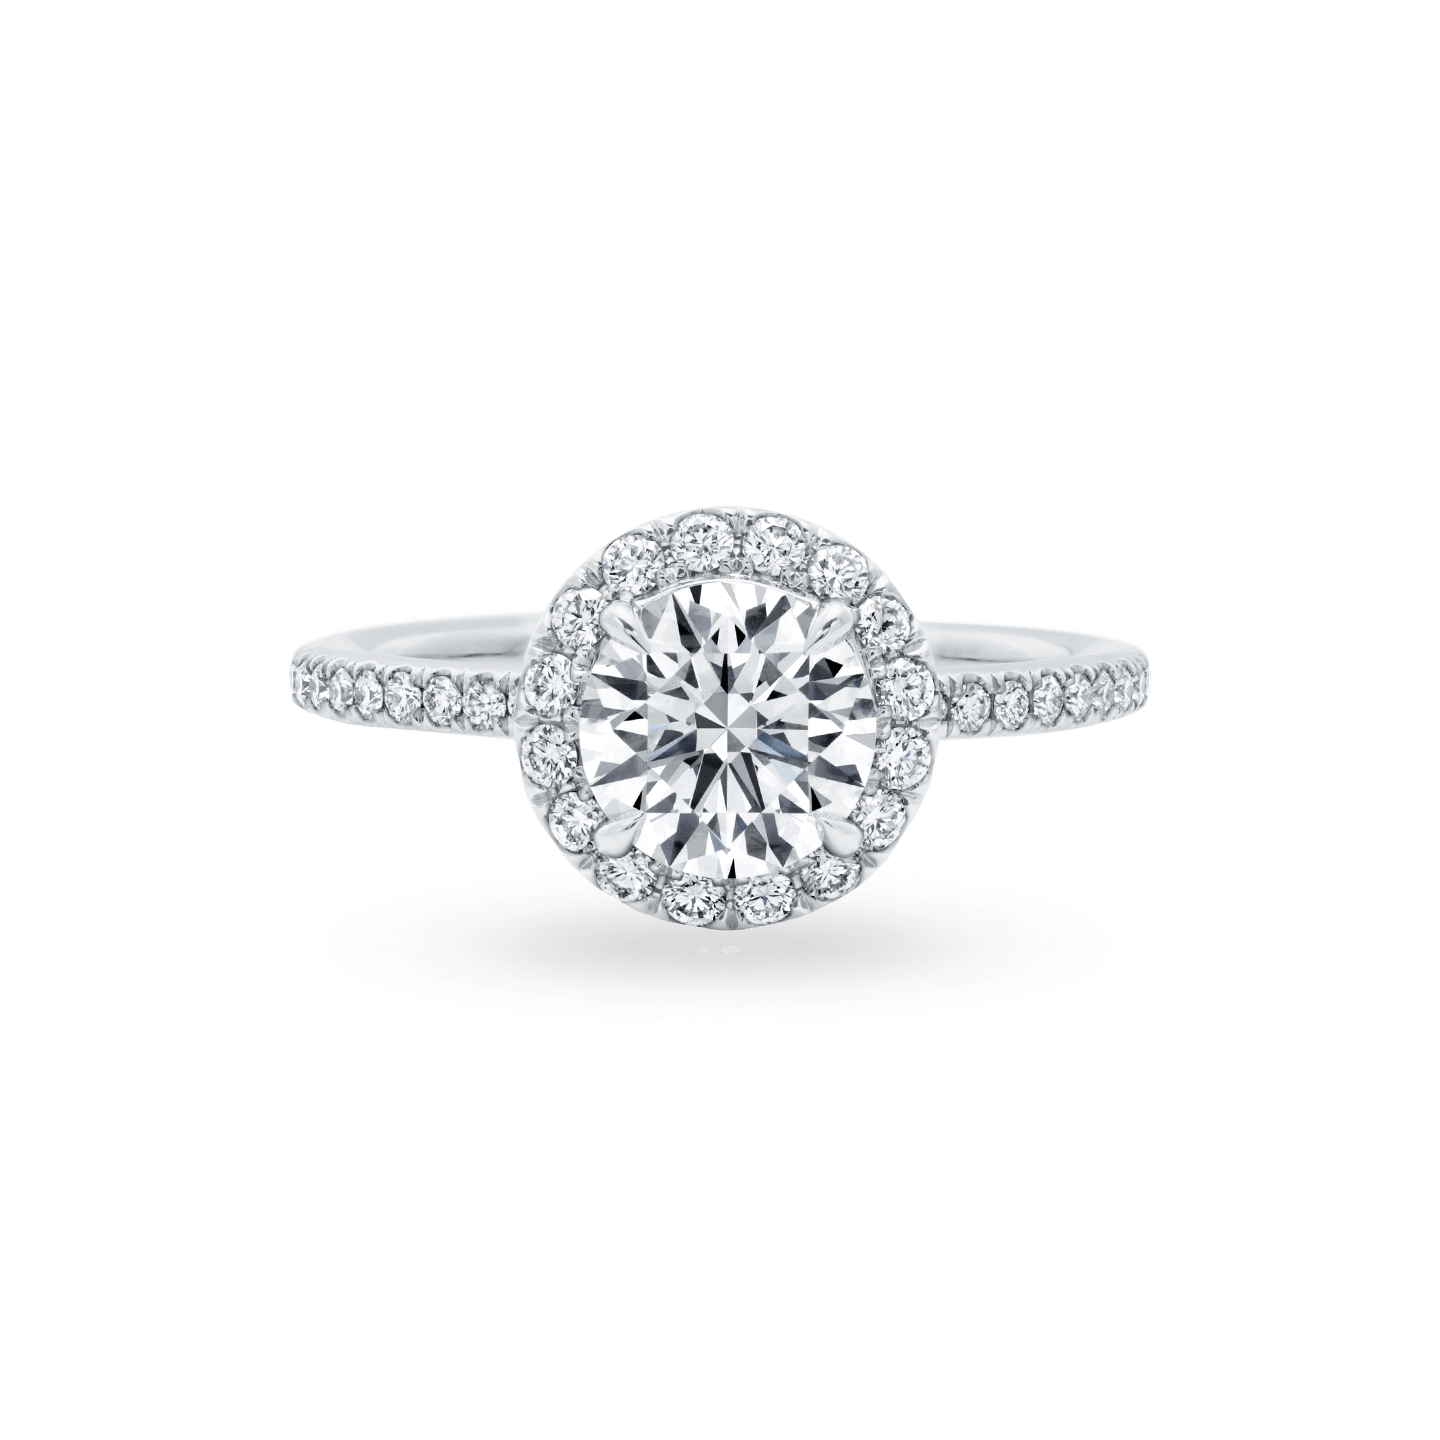 The One Round Brilliant Diamond Micropavé Engagement Ring, Product Image 1